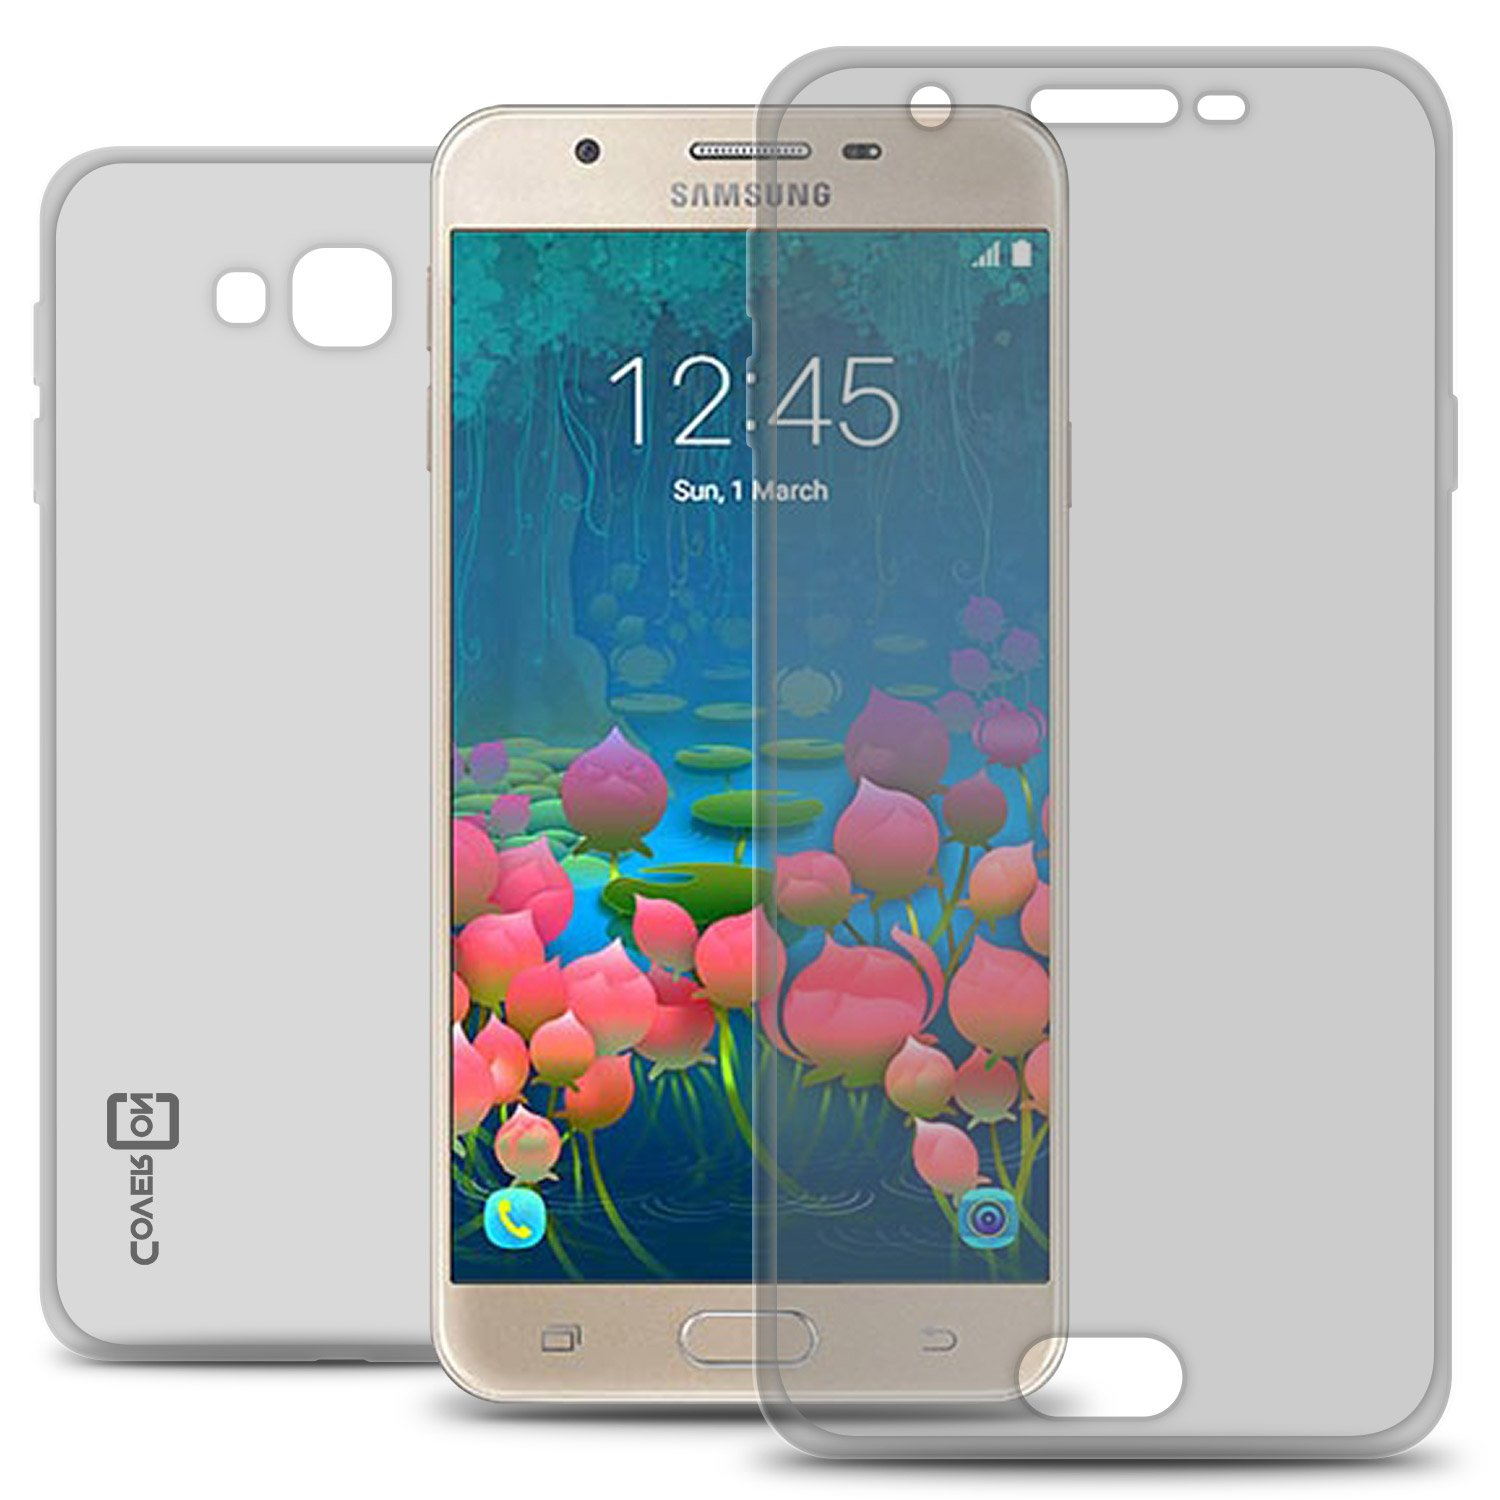 Galaxy J5 Prime Case, Galaxy On5 Case (2016 Version Only), CoverON [WrapGuard Series] Full Body Two Piece Ultra Slim Fit Clear TPU Cover Phone Case ...